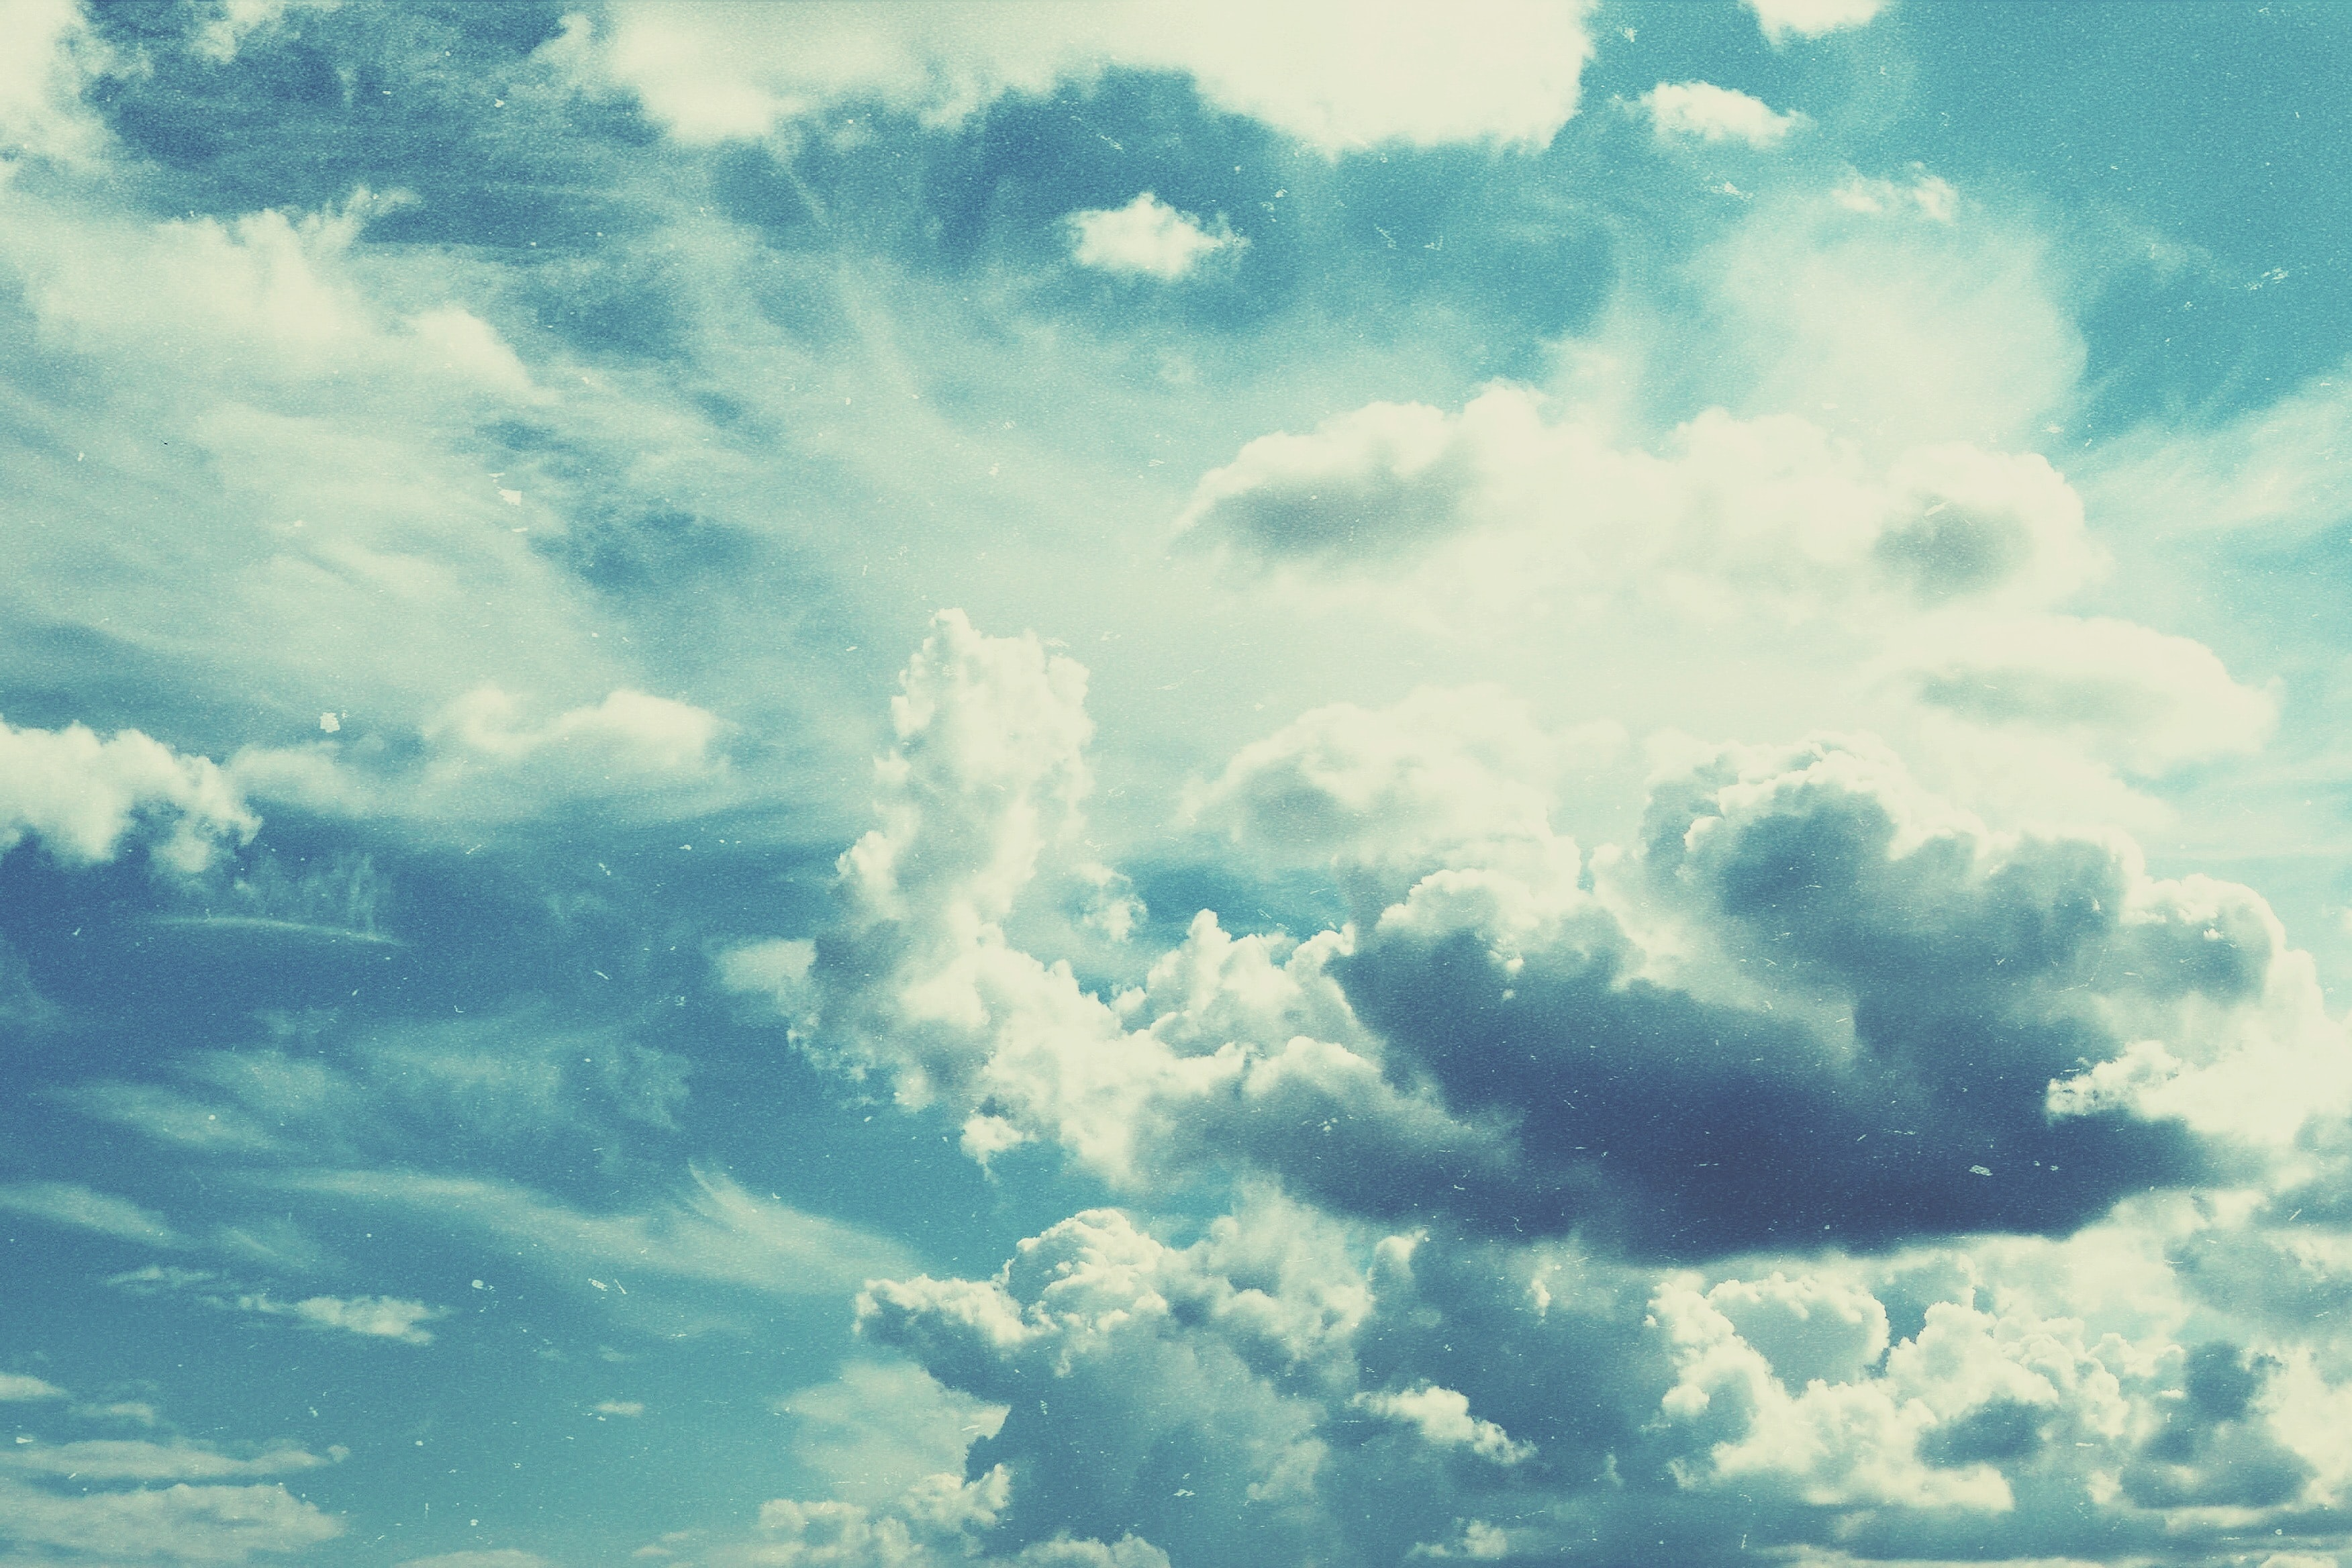 cloudy sky during daytime